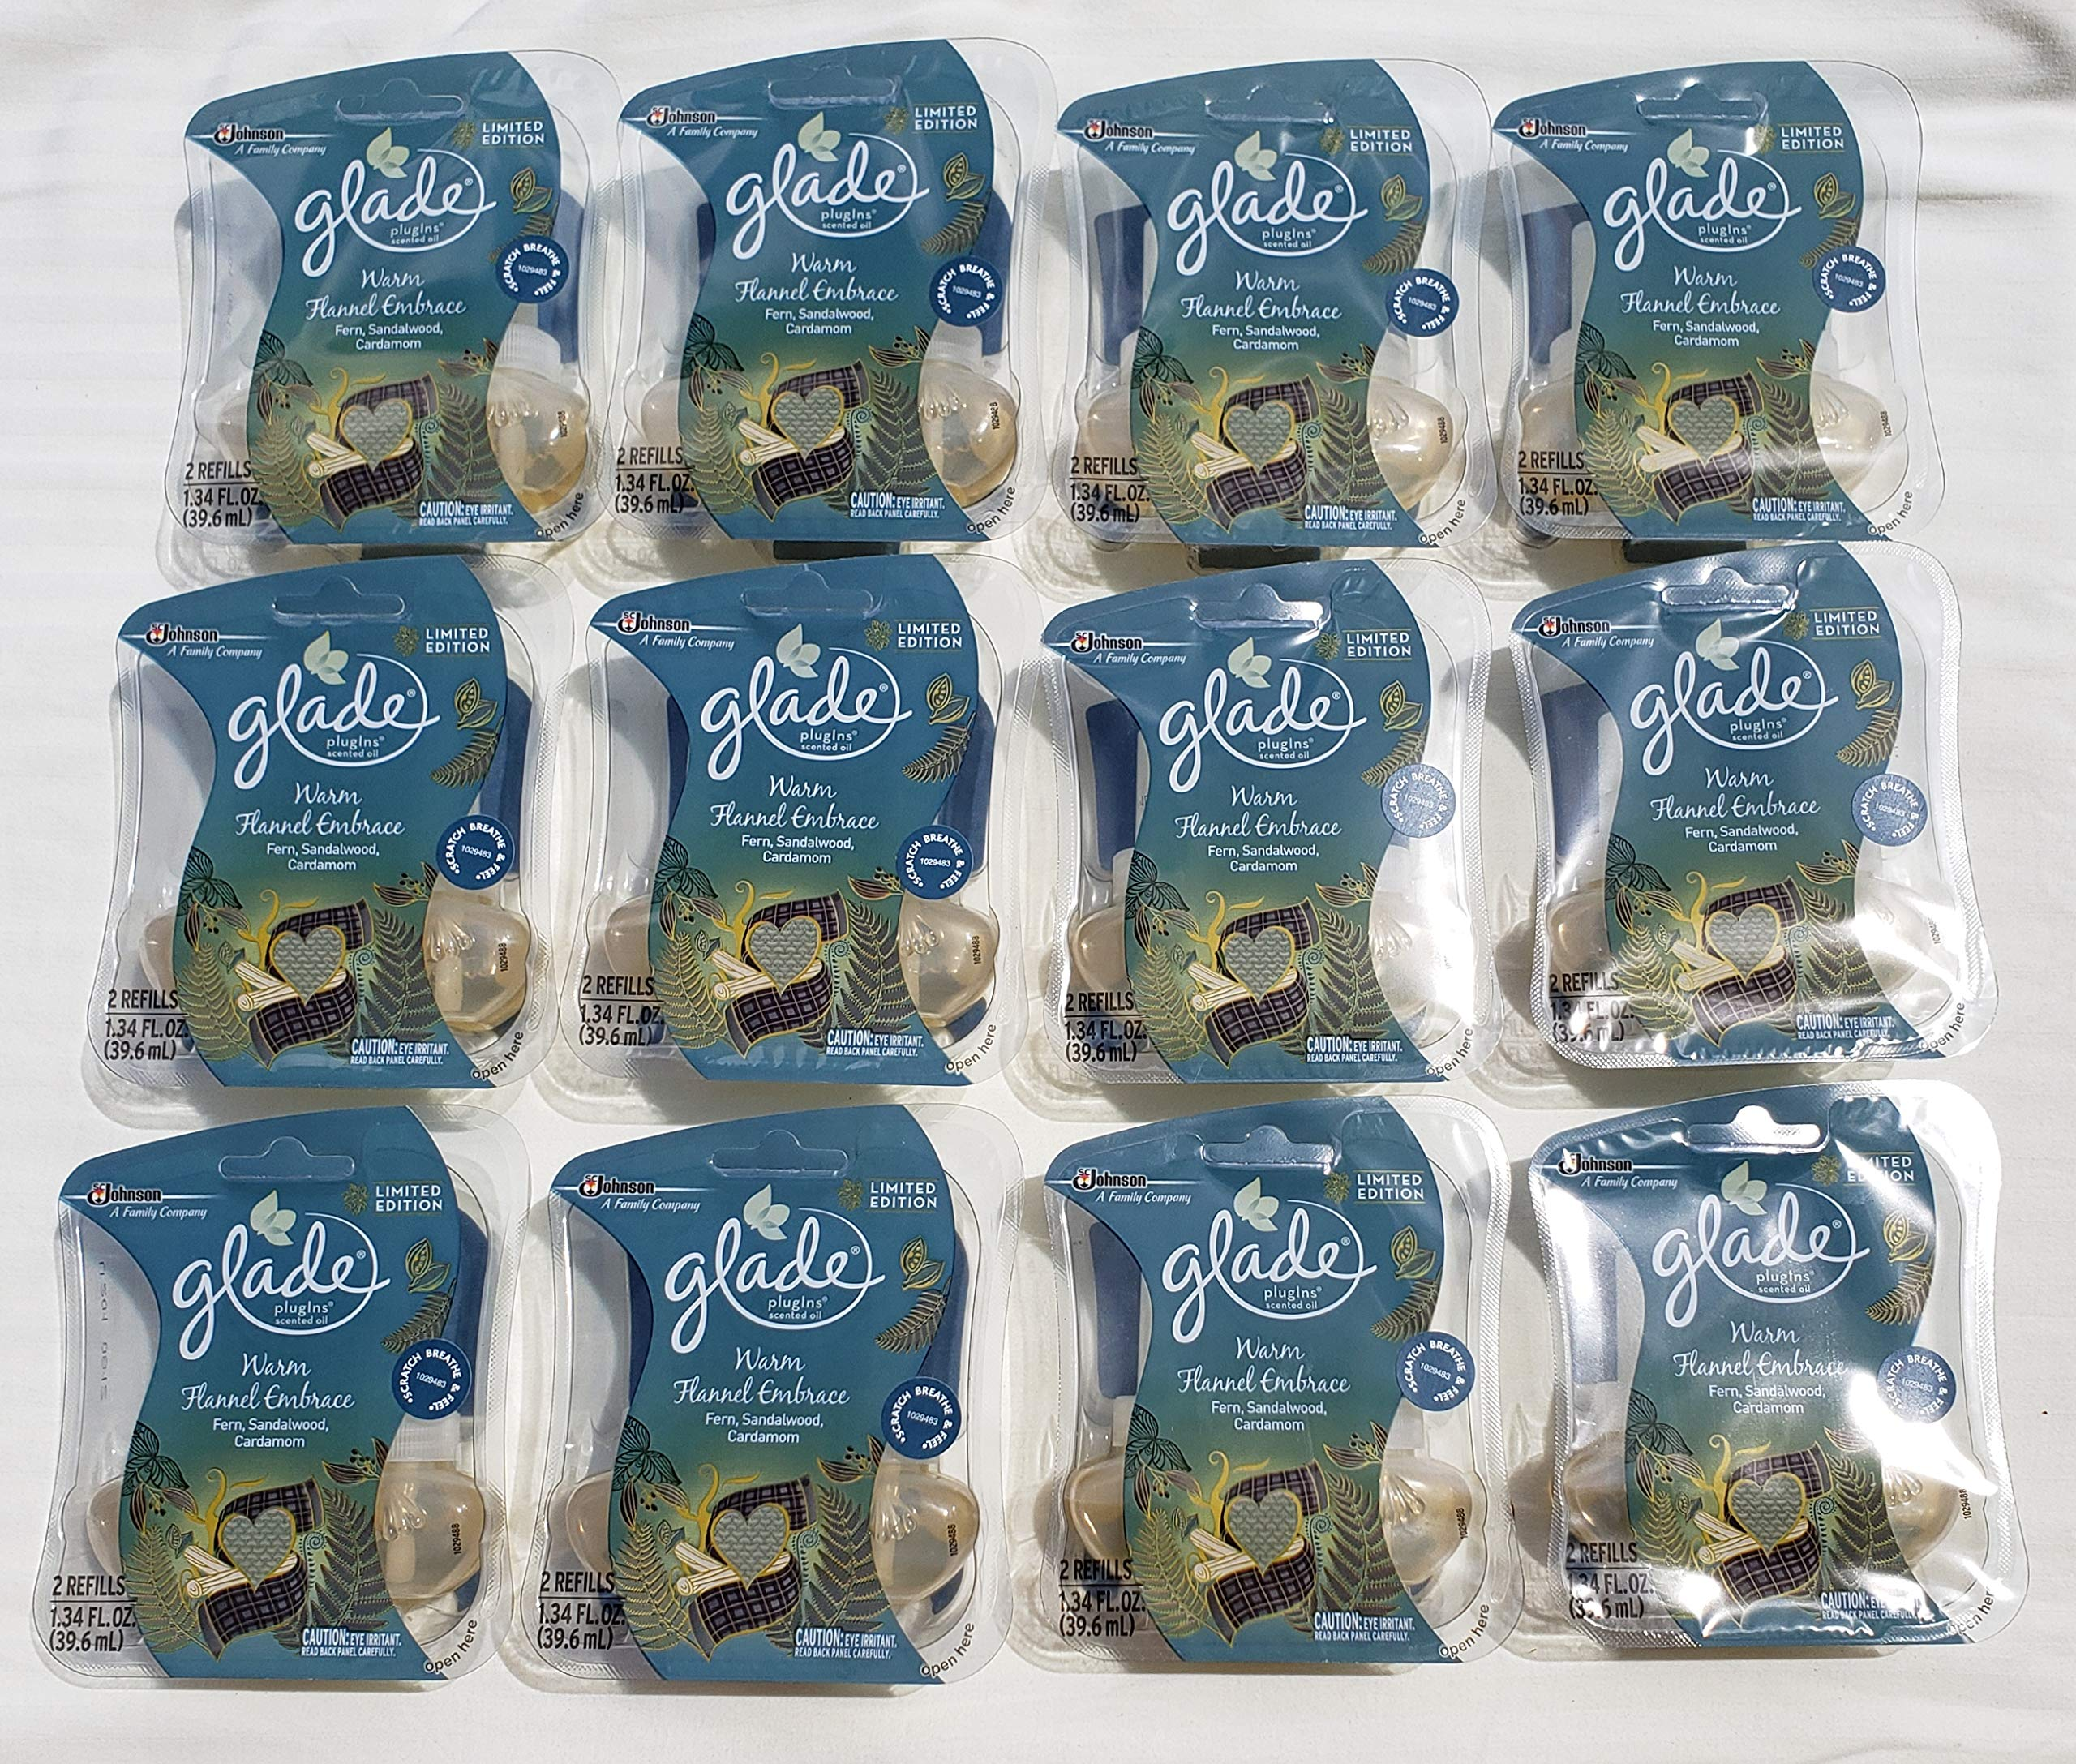 24 Glade PLUGINS Scented Oil Refills Warm Flannel Embrace Limited 12 Twin Packs by Glade (Image #1)